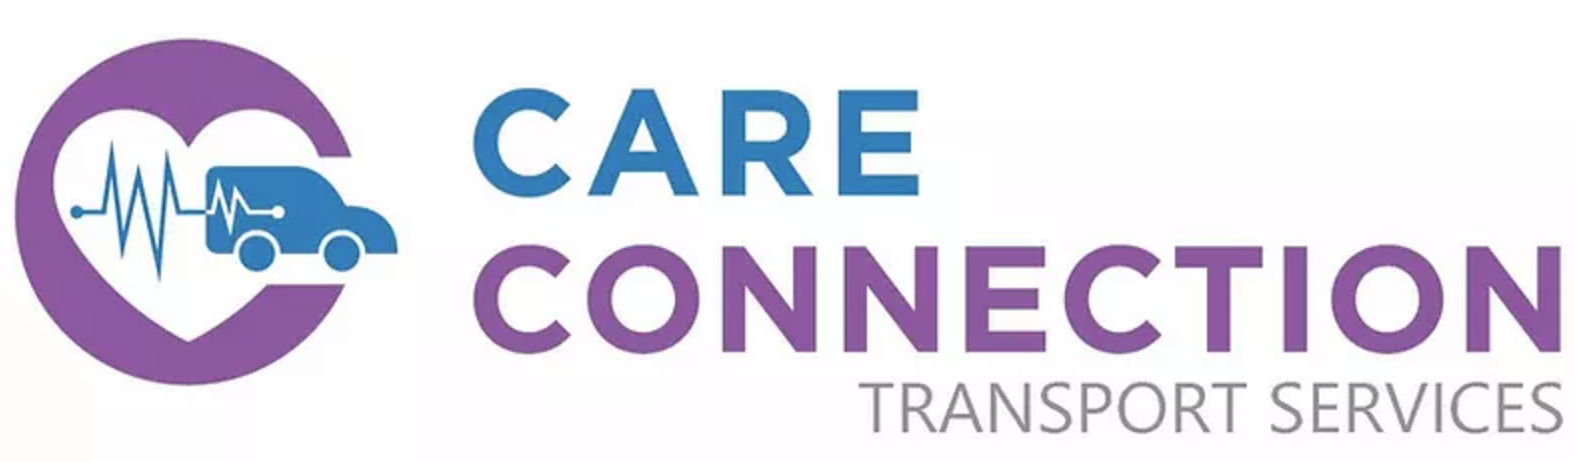 care-connection